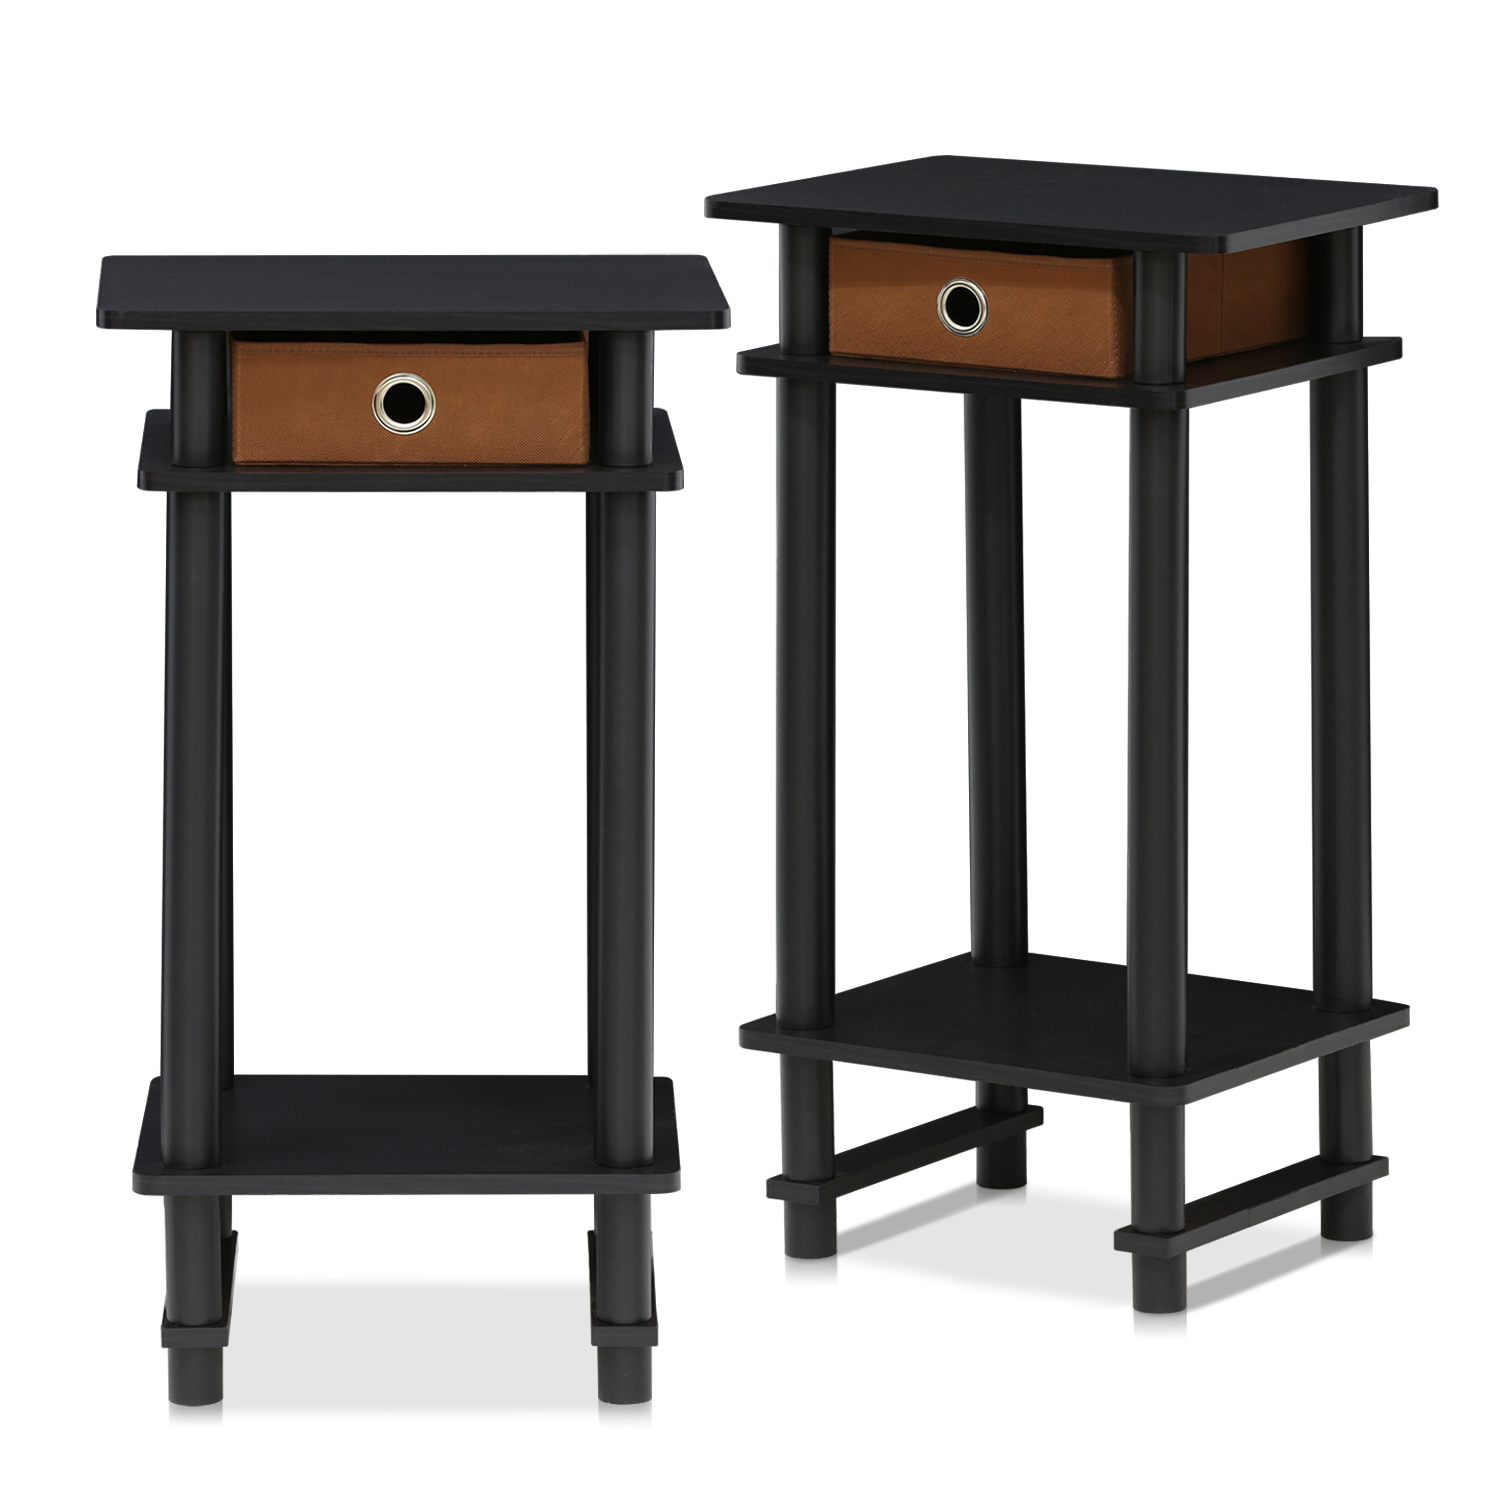 end table set tall nightstand bedside accent with bin espresso brown outdoor wicker furniture covers west elm console rustic trunk coffee home accents brand round metal glynn